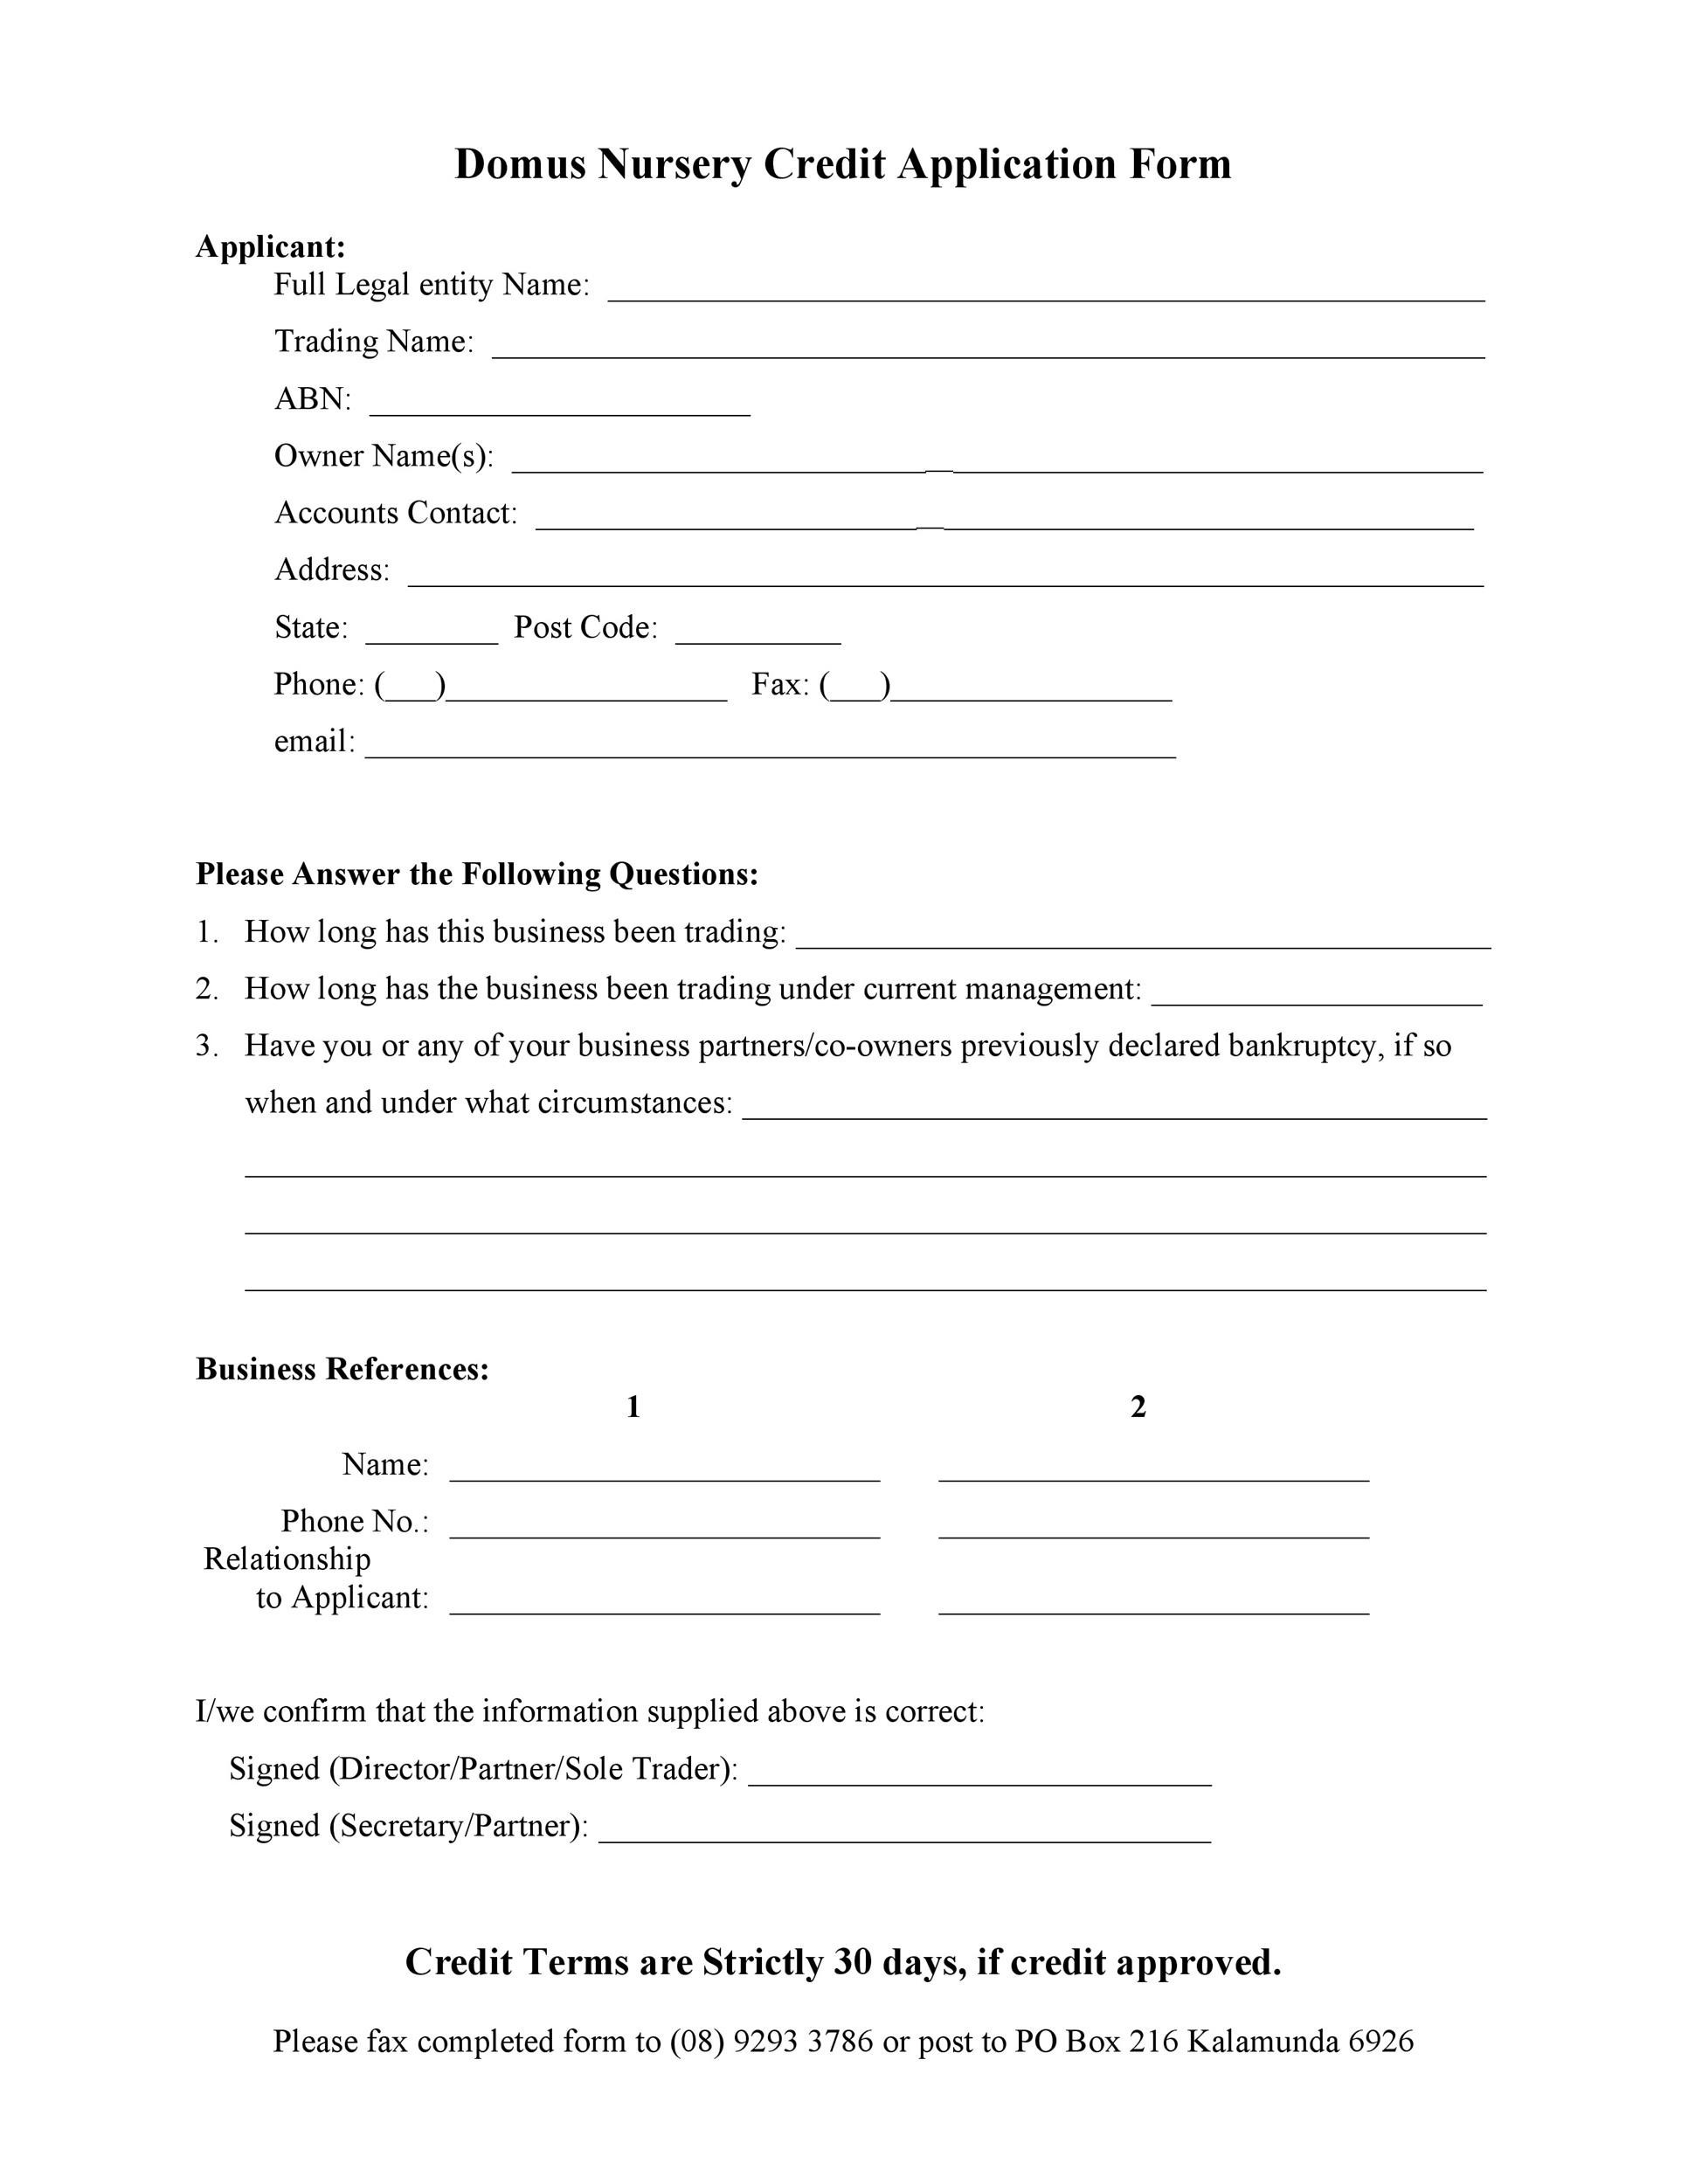 Free Credit Application Form 33